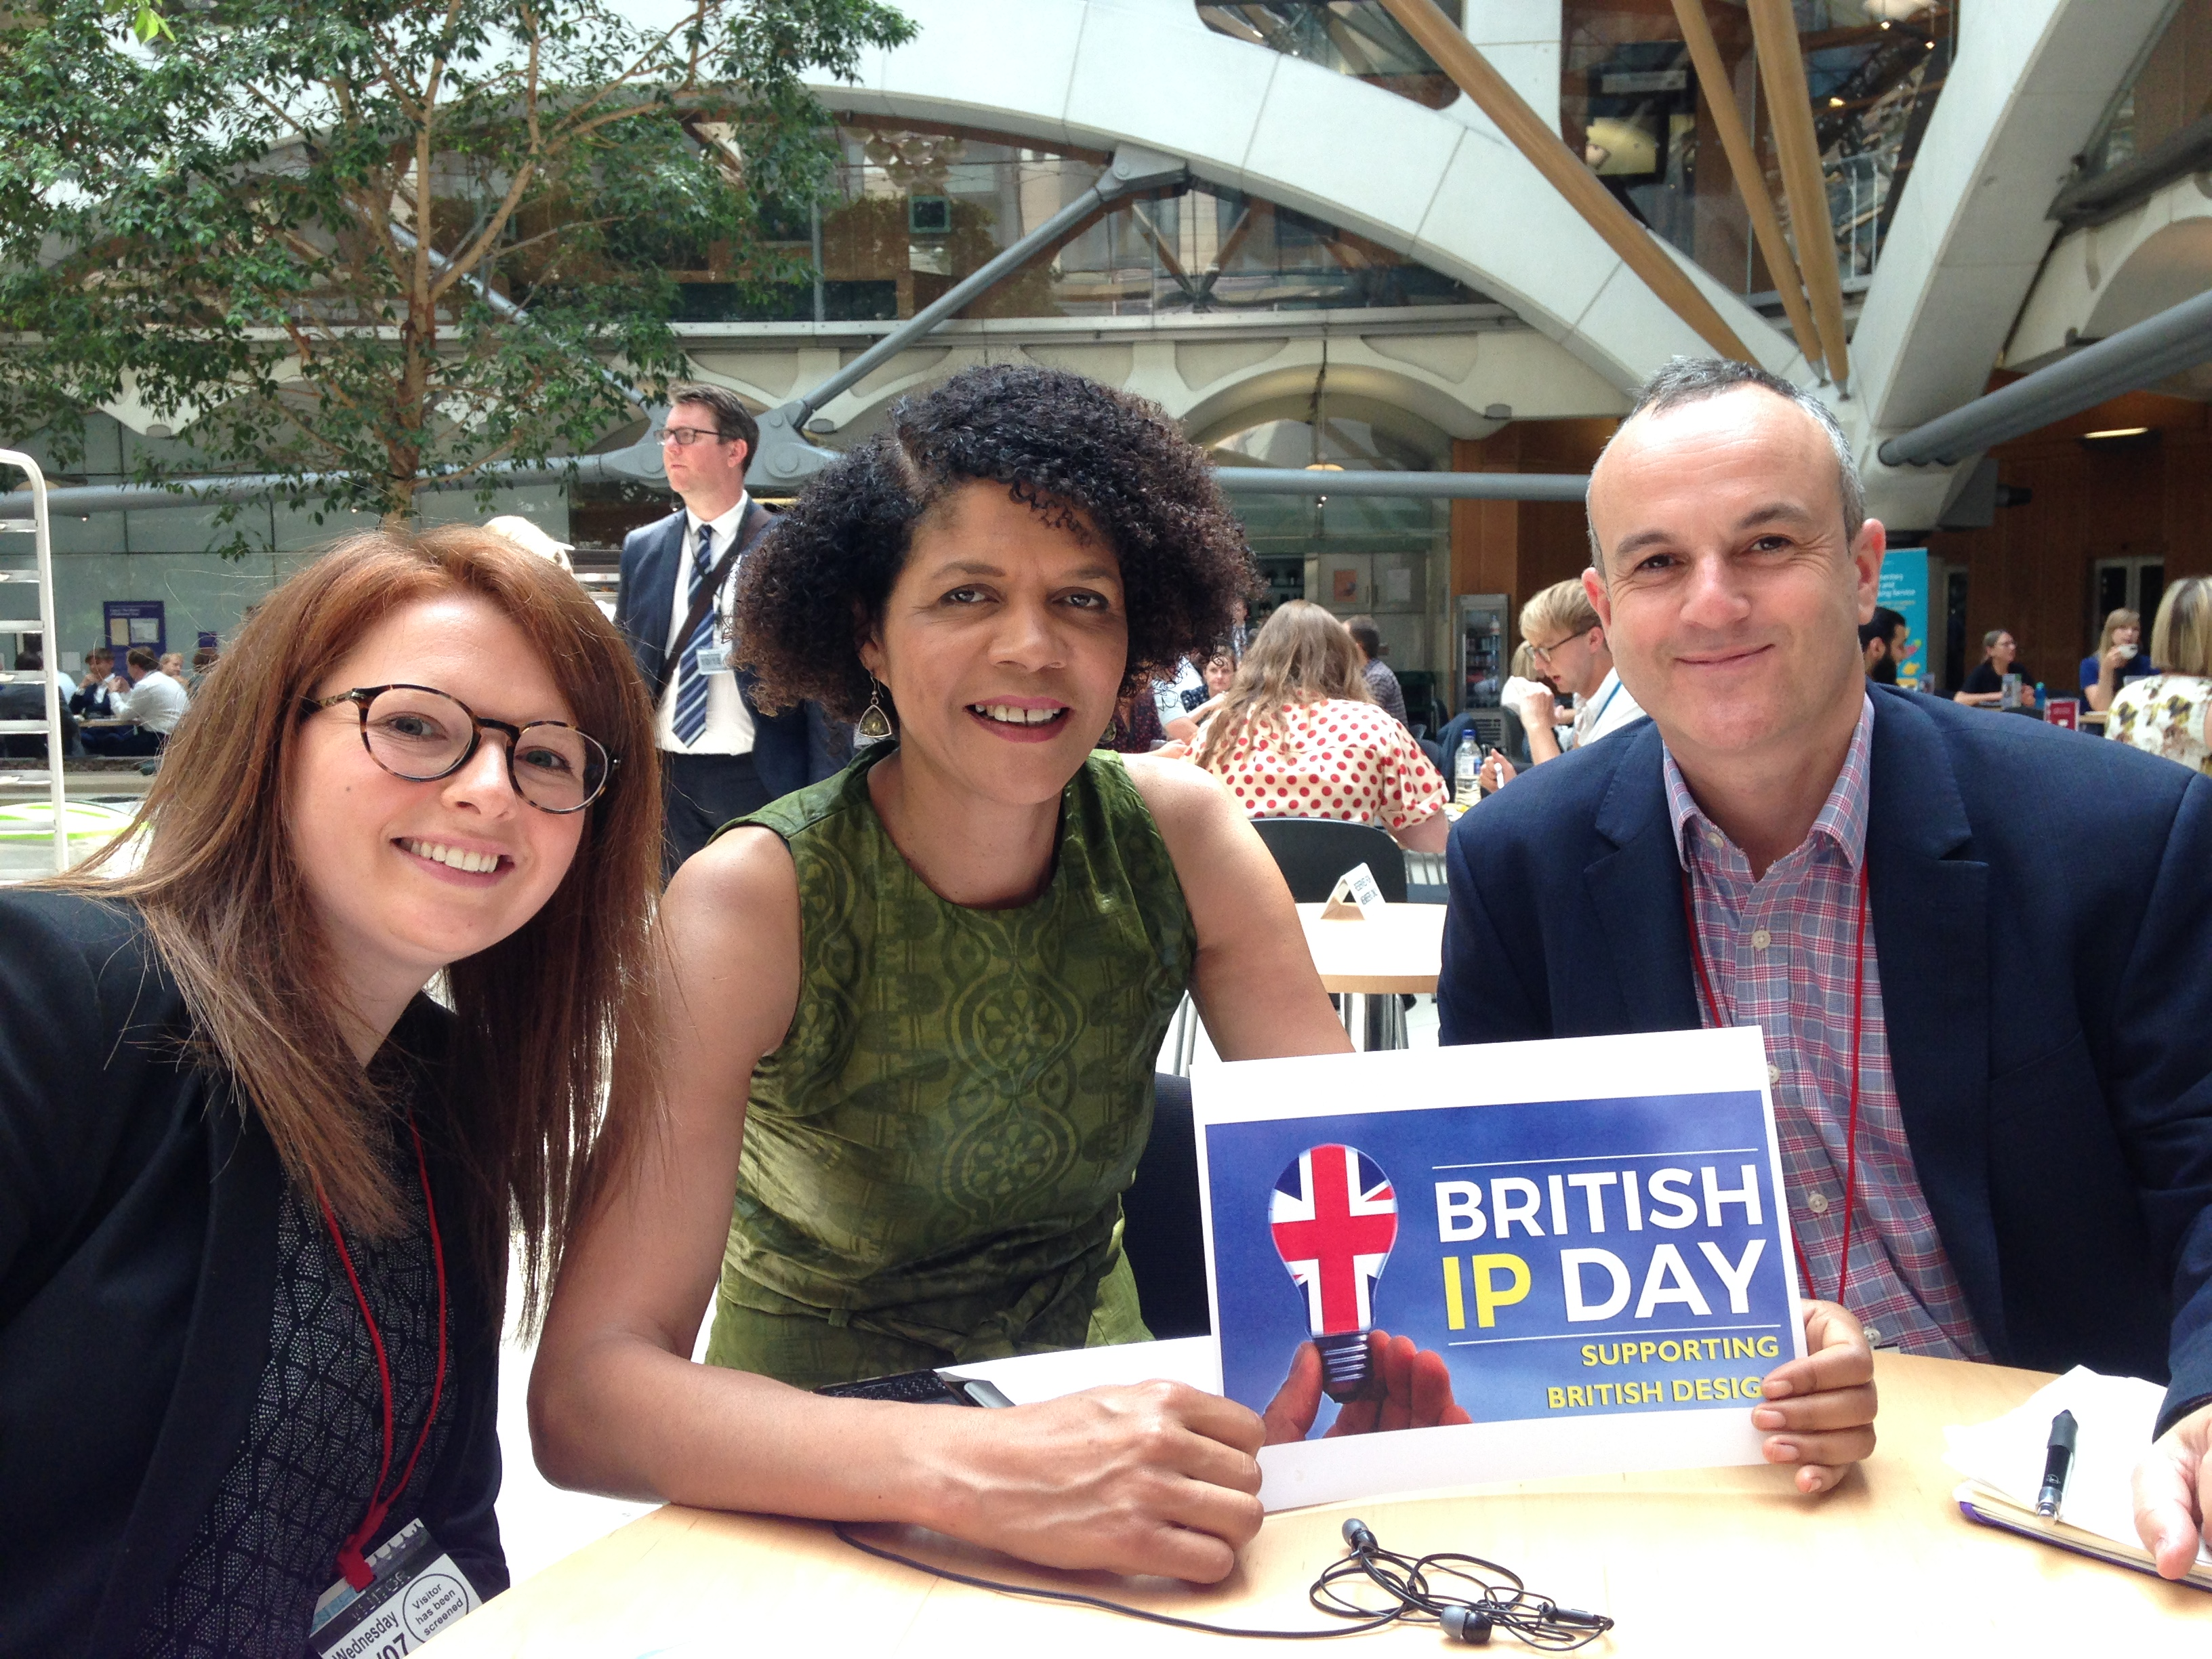 British IP Day 2018